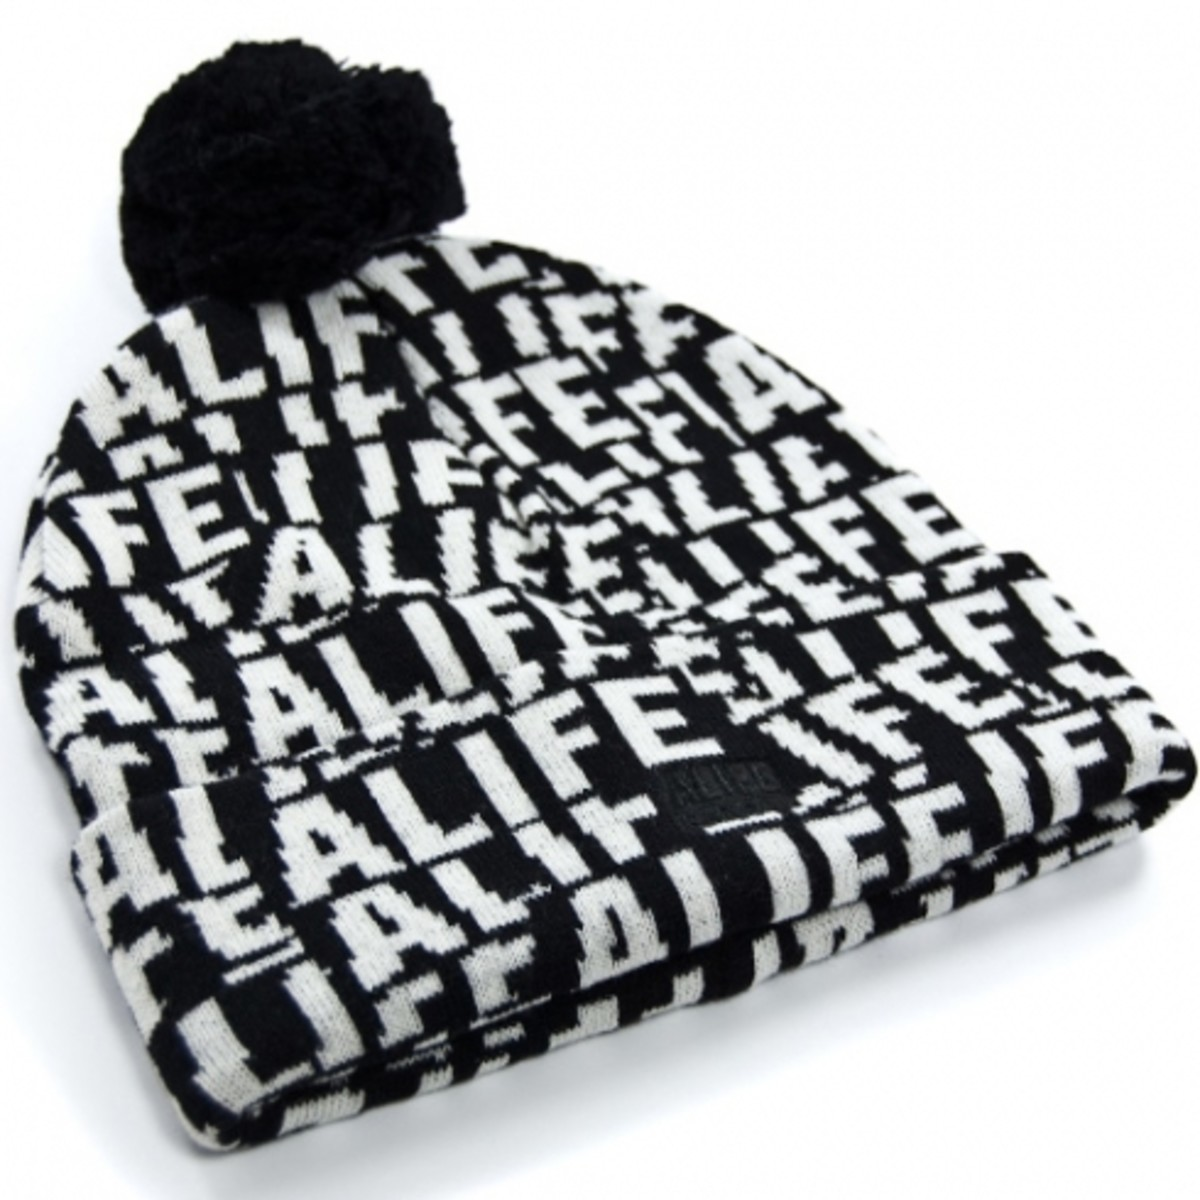 ALIFE x Kangol - Stuck Up Pom Pom - Black